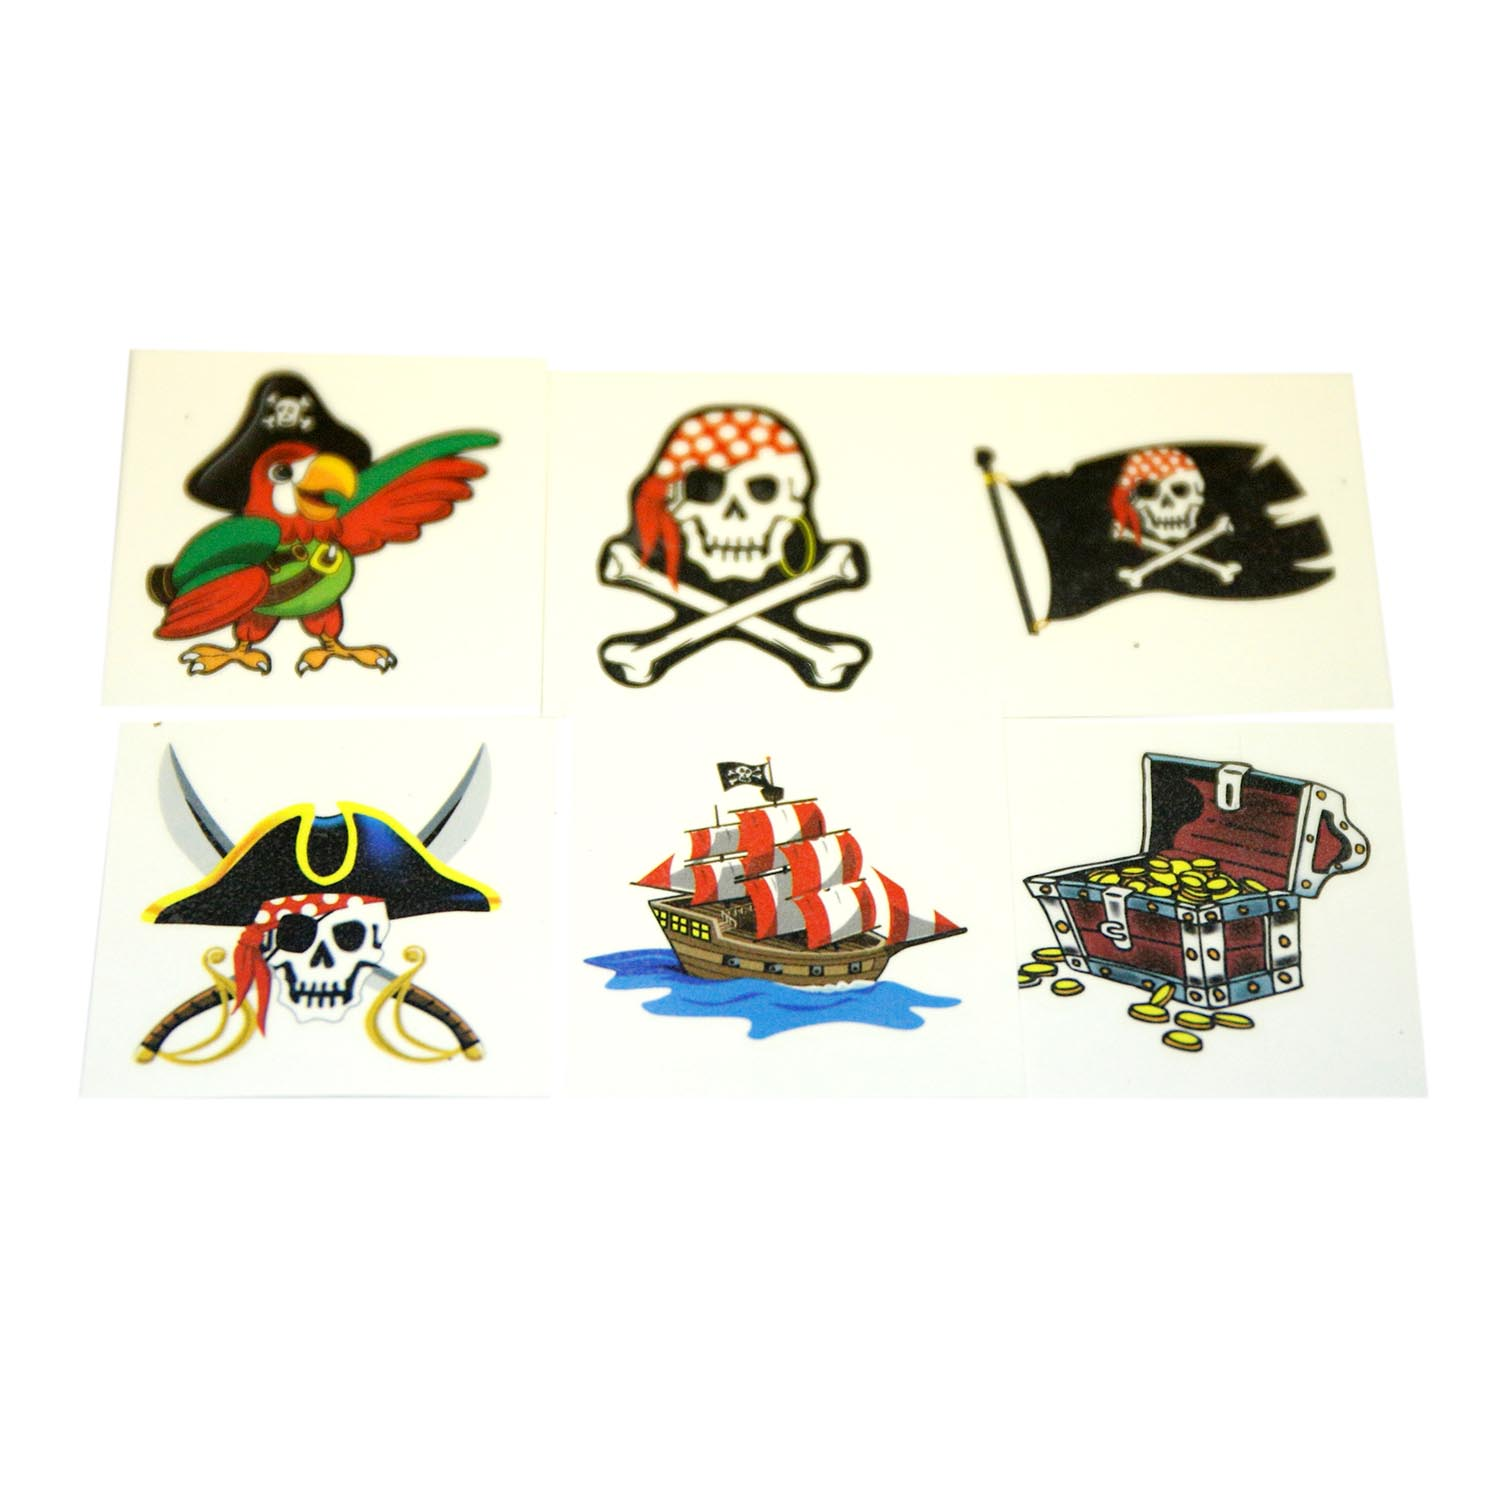 049392002599 upc pirate temporary tattoos 144 pack for Easter tattoos walmart